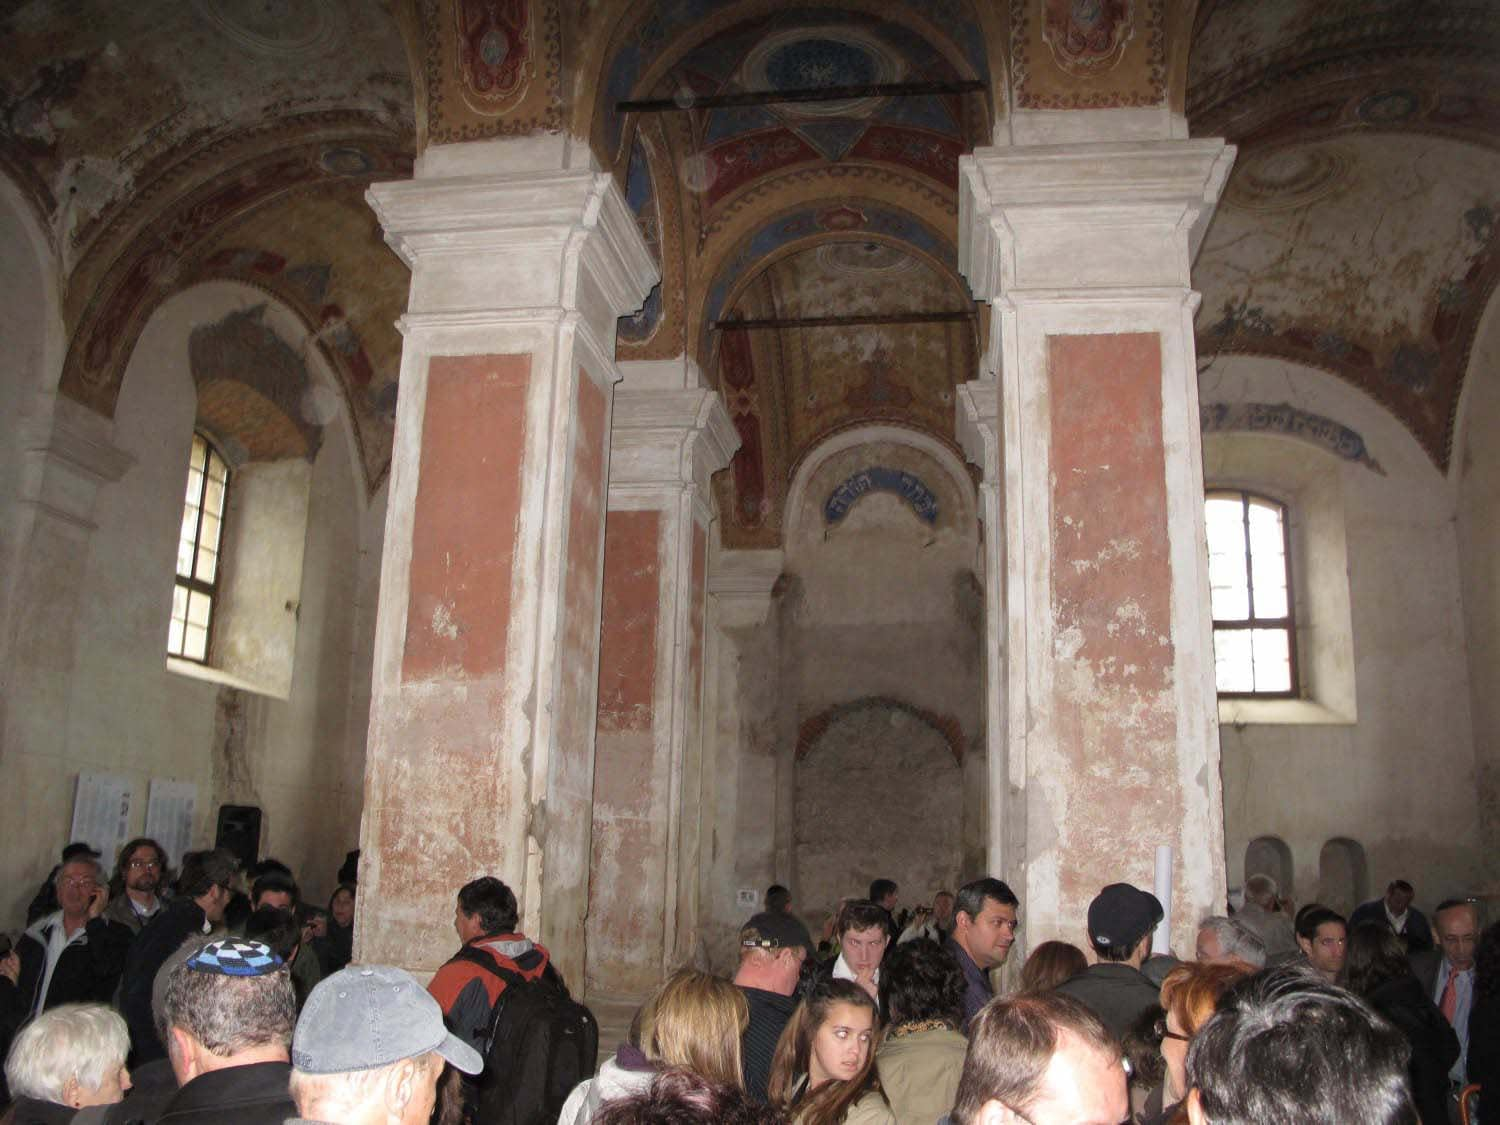 May 2012 Commemoration Gathering in Bardejov Old Synagogue